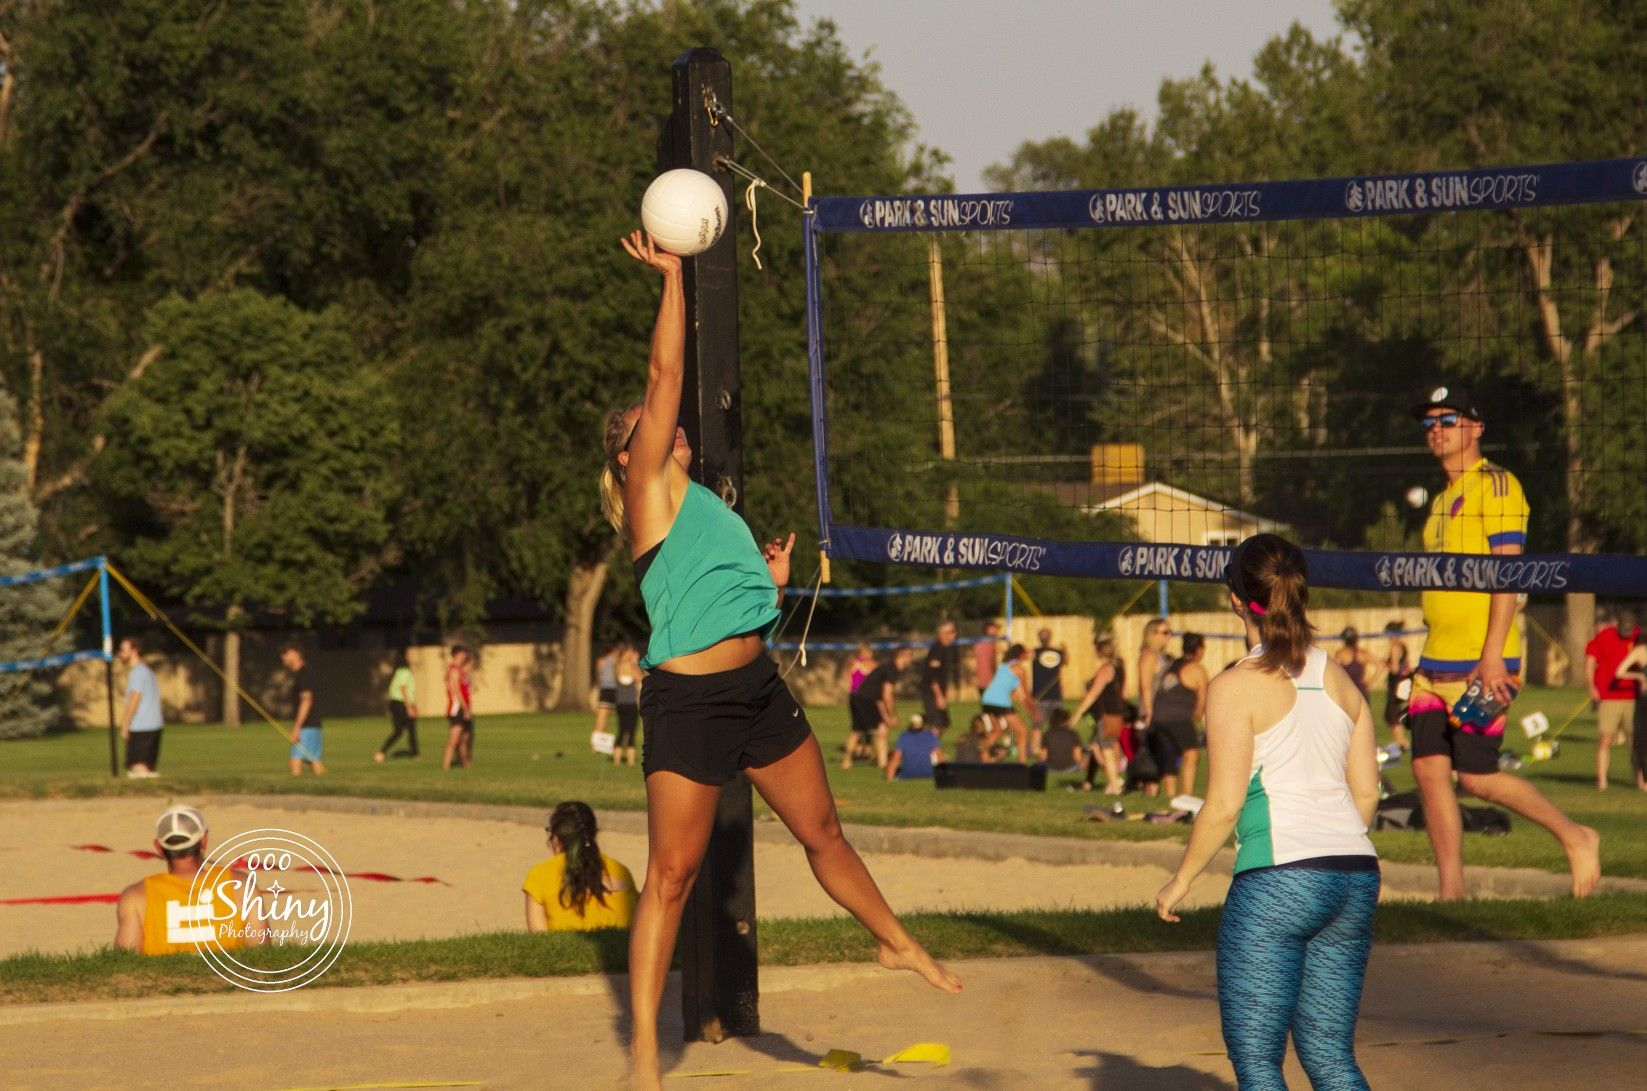 Sand volleyball action with Red Rocks Church. 7-19-19, at Lakewood Park in Lakewood, Colorado.  #Canon T5 F/5.6 92mm 1/1000s ISO-250 #sandvolleyball #RedRocksChurch #LakewoodPark #Lakewood #Colorado #oooShinyPhotography #oooShinyPhotos #oooShiny #volleyball #RedRocksSports #RedRocksvolleyball #RedRocksCreative #sports #sportsphotography #TeamCanon #photooftheday #outthereColorado #hashtagColorado #Colorado_creative #Coloradotography #Coloradoshared #Coloradocollective